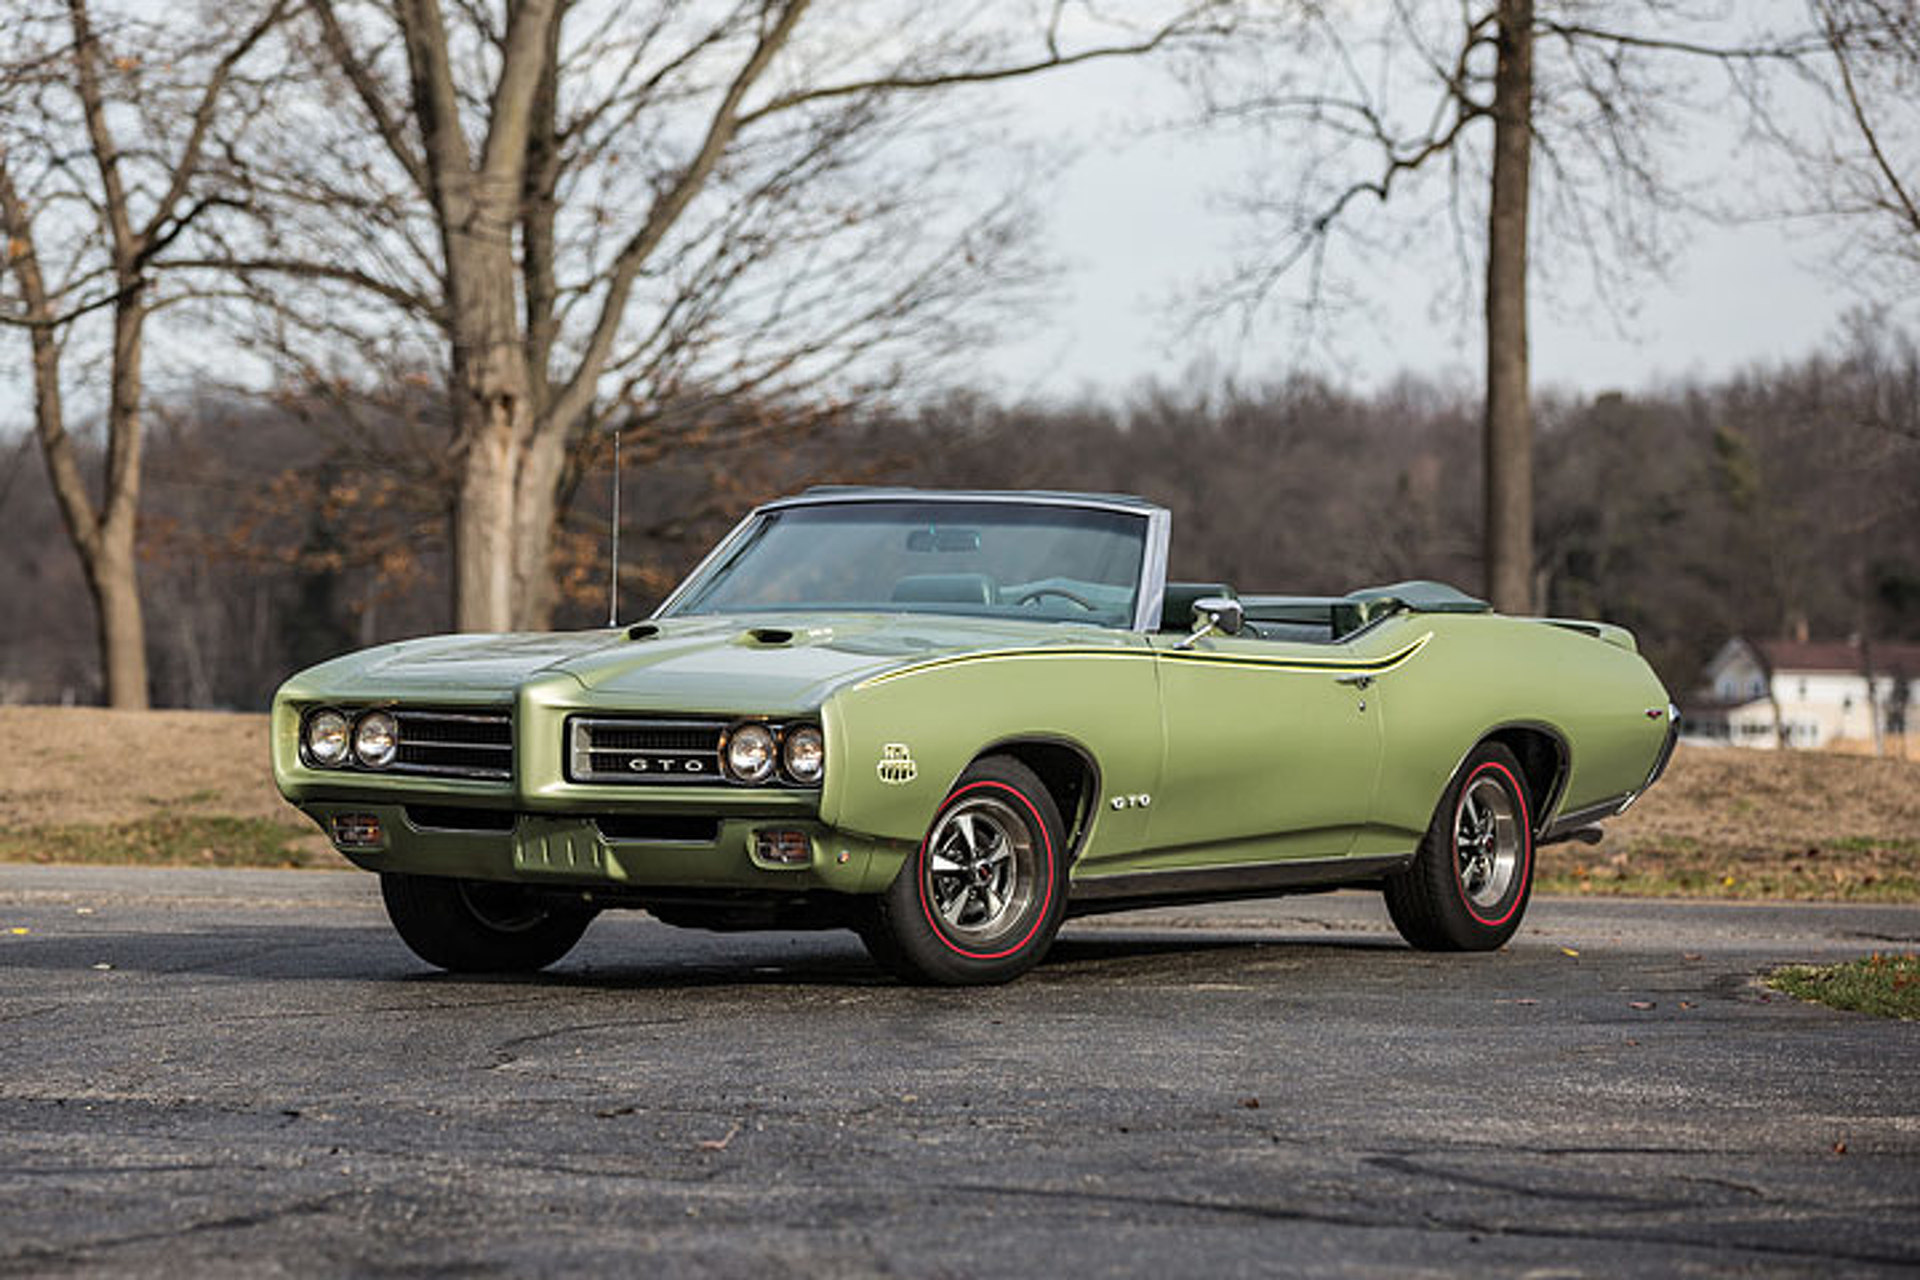 Meet the Only Triple-Green \'69 Pontiac GTO Judge in the World